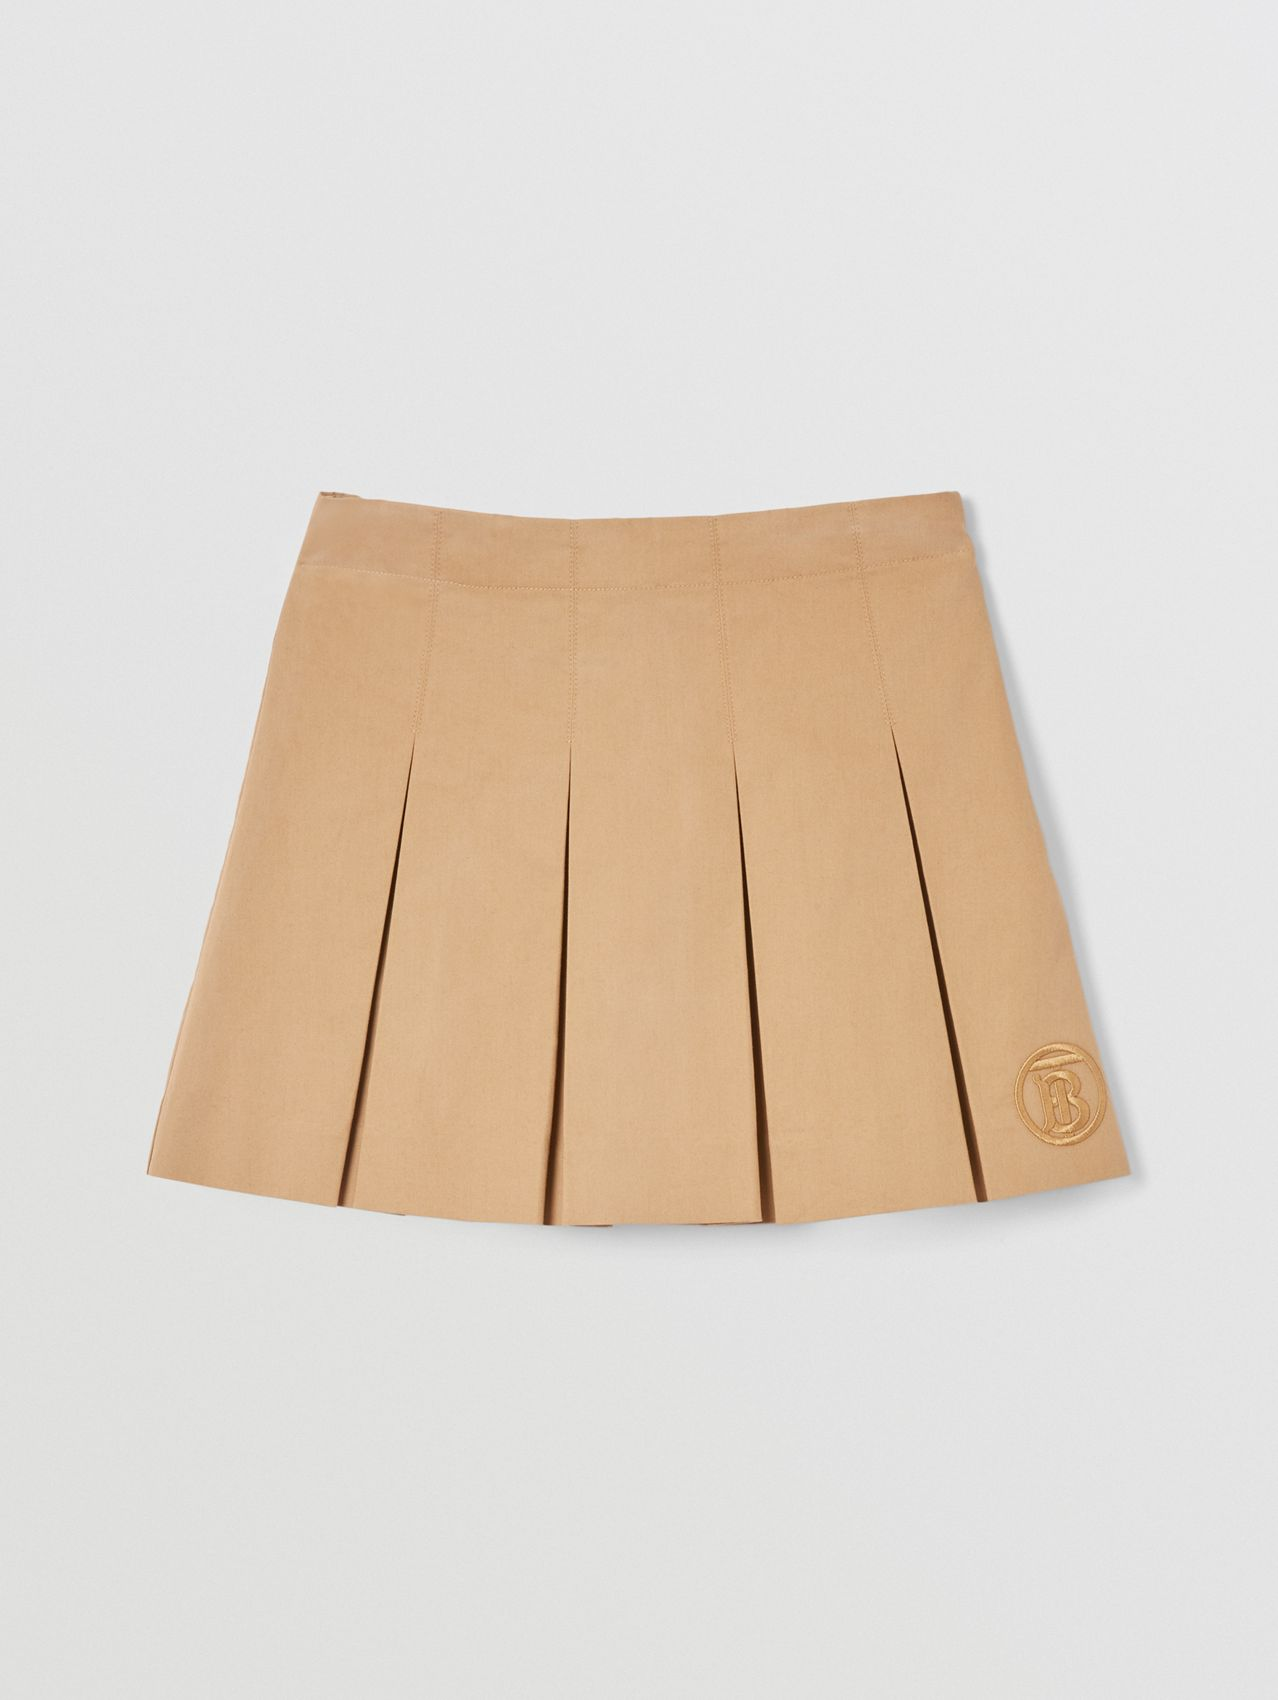 Monogram Motif Cotton Twill Pleated Skirt in Archive Beige